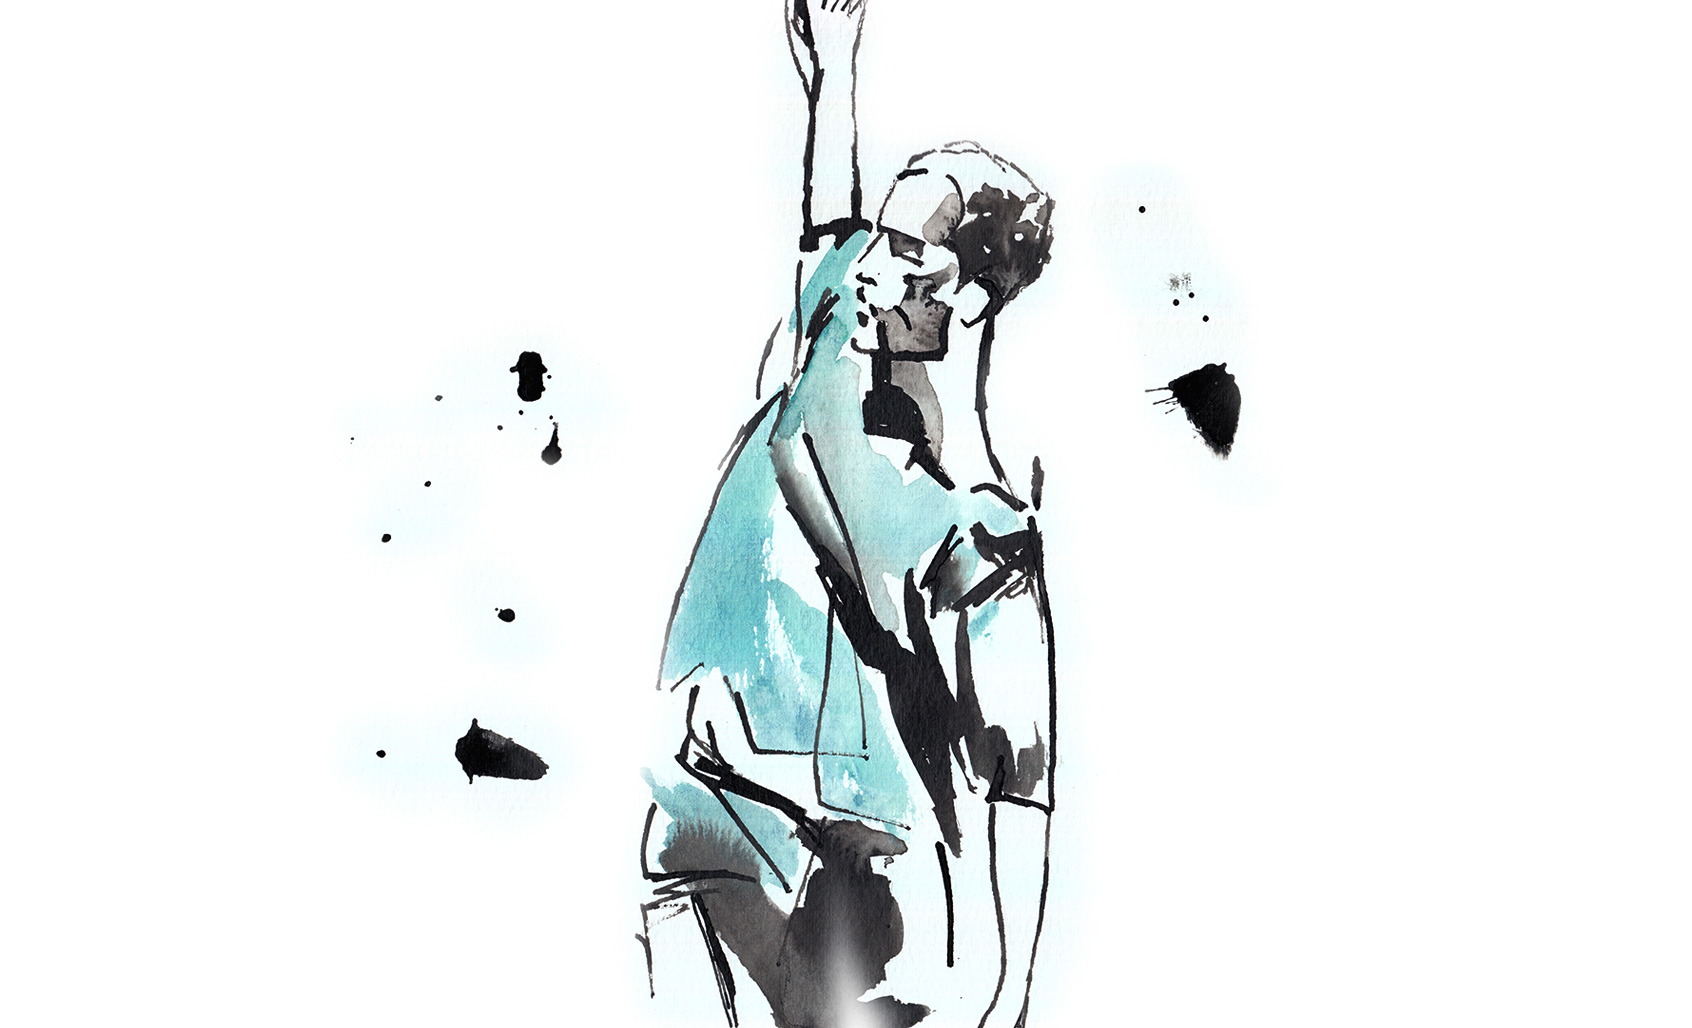 Thomas Vantuycom in A Love Supreme by Anne Teresa de Keersmaeker and Salva Sanchis, illustration © Araso